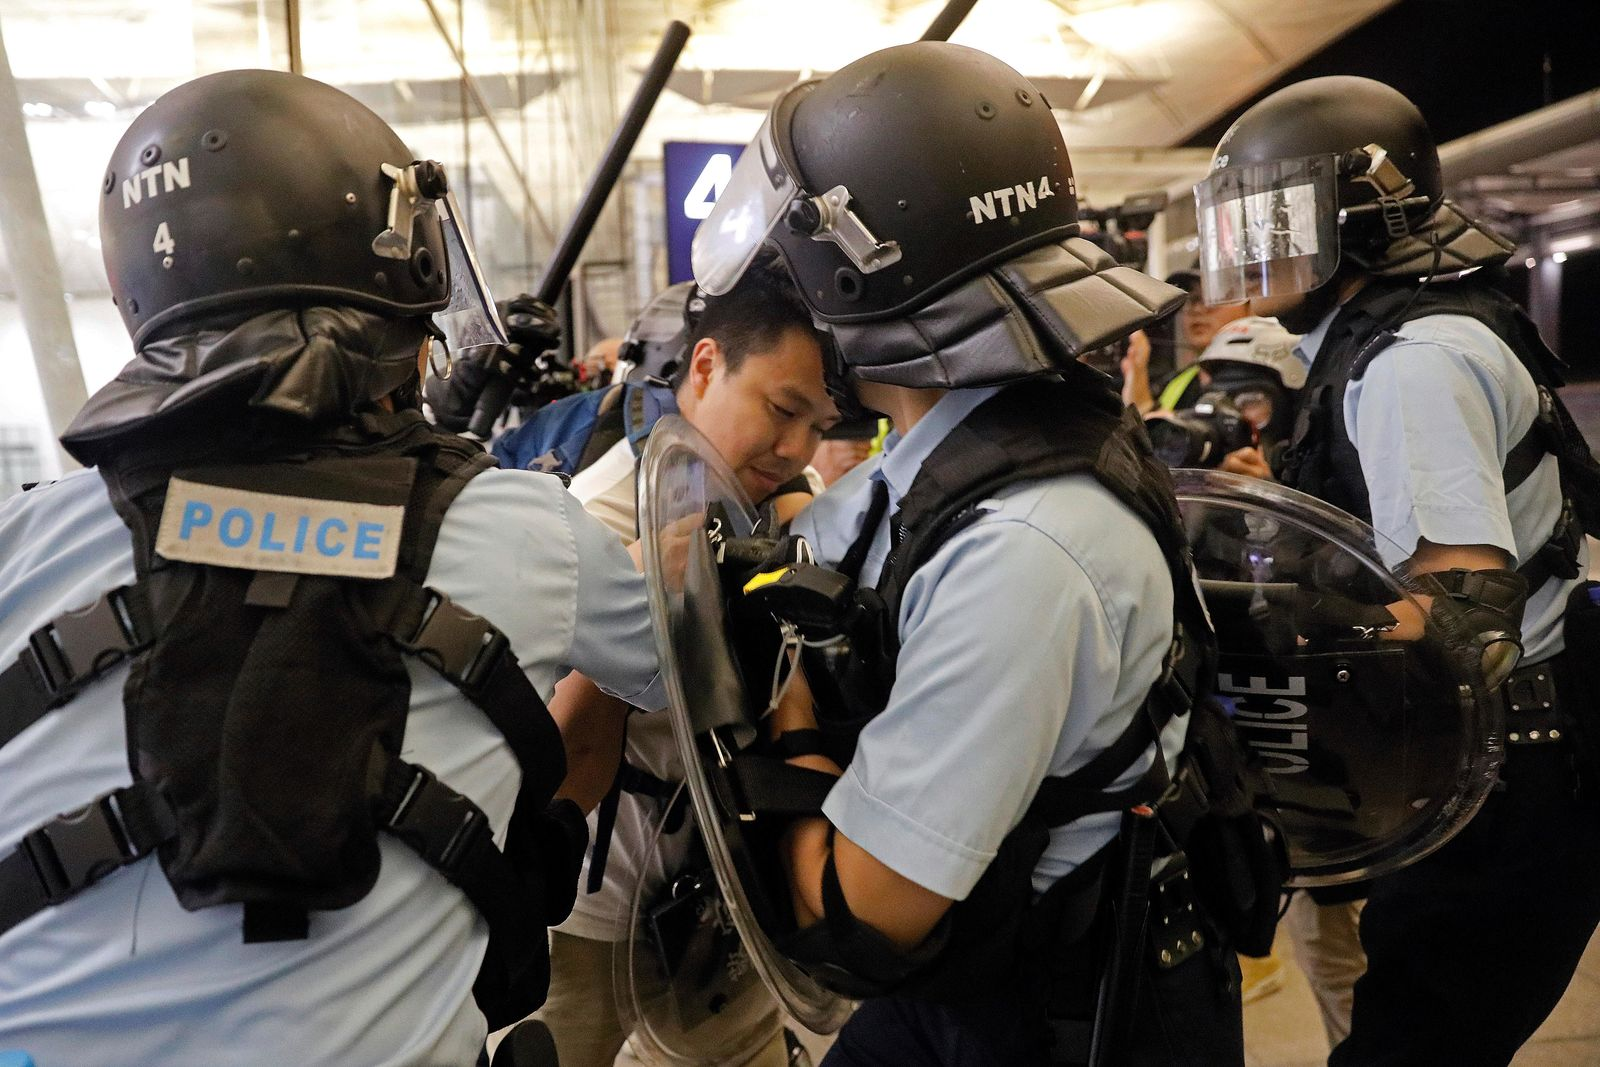 Policemen arrest a protester during a demonstration at the Airport in Hong Kong, Tuesday, Aug. 13, 2019. (AP Photo/Vincent Yu)